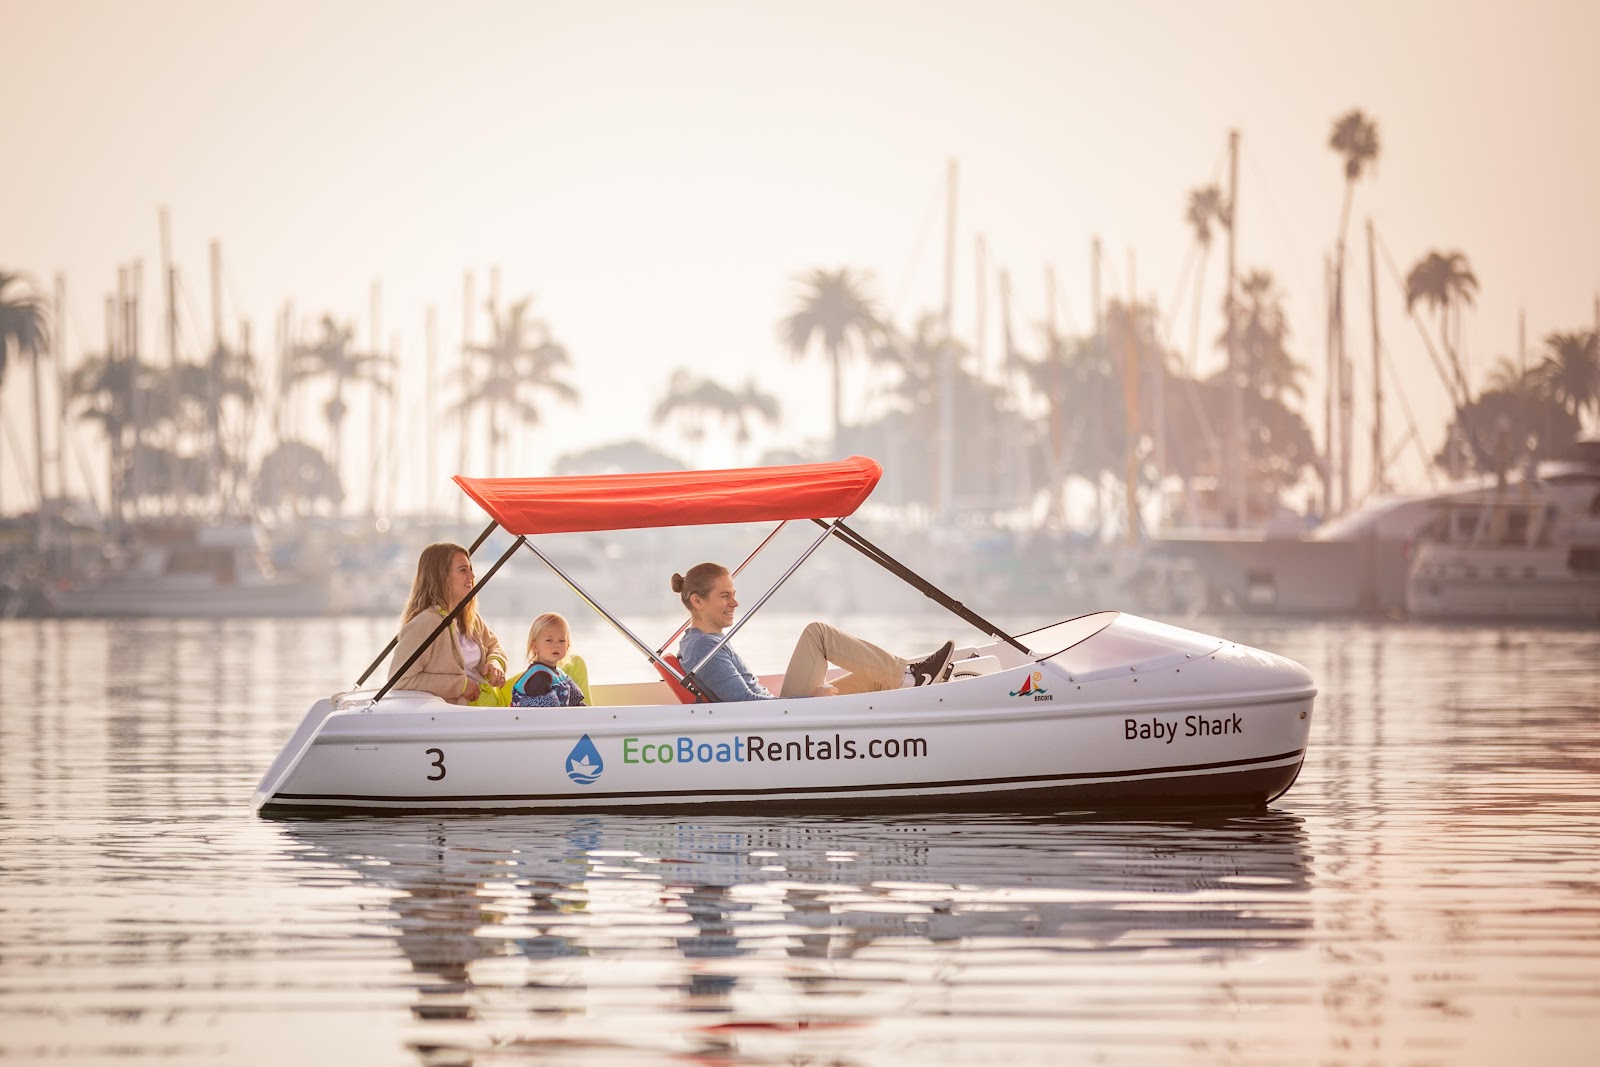 Eco pedal boat with 2 adults and a kid. Family-friendly activity